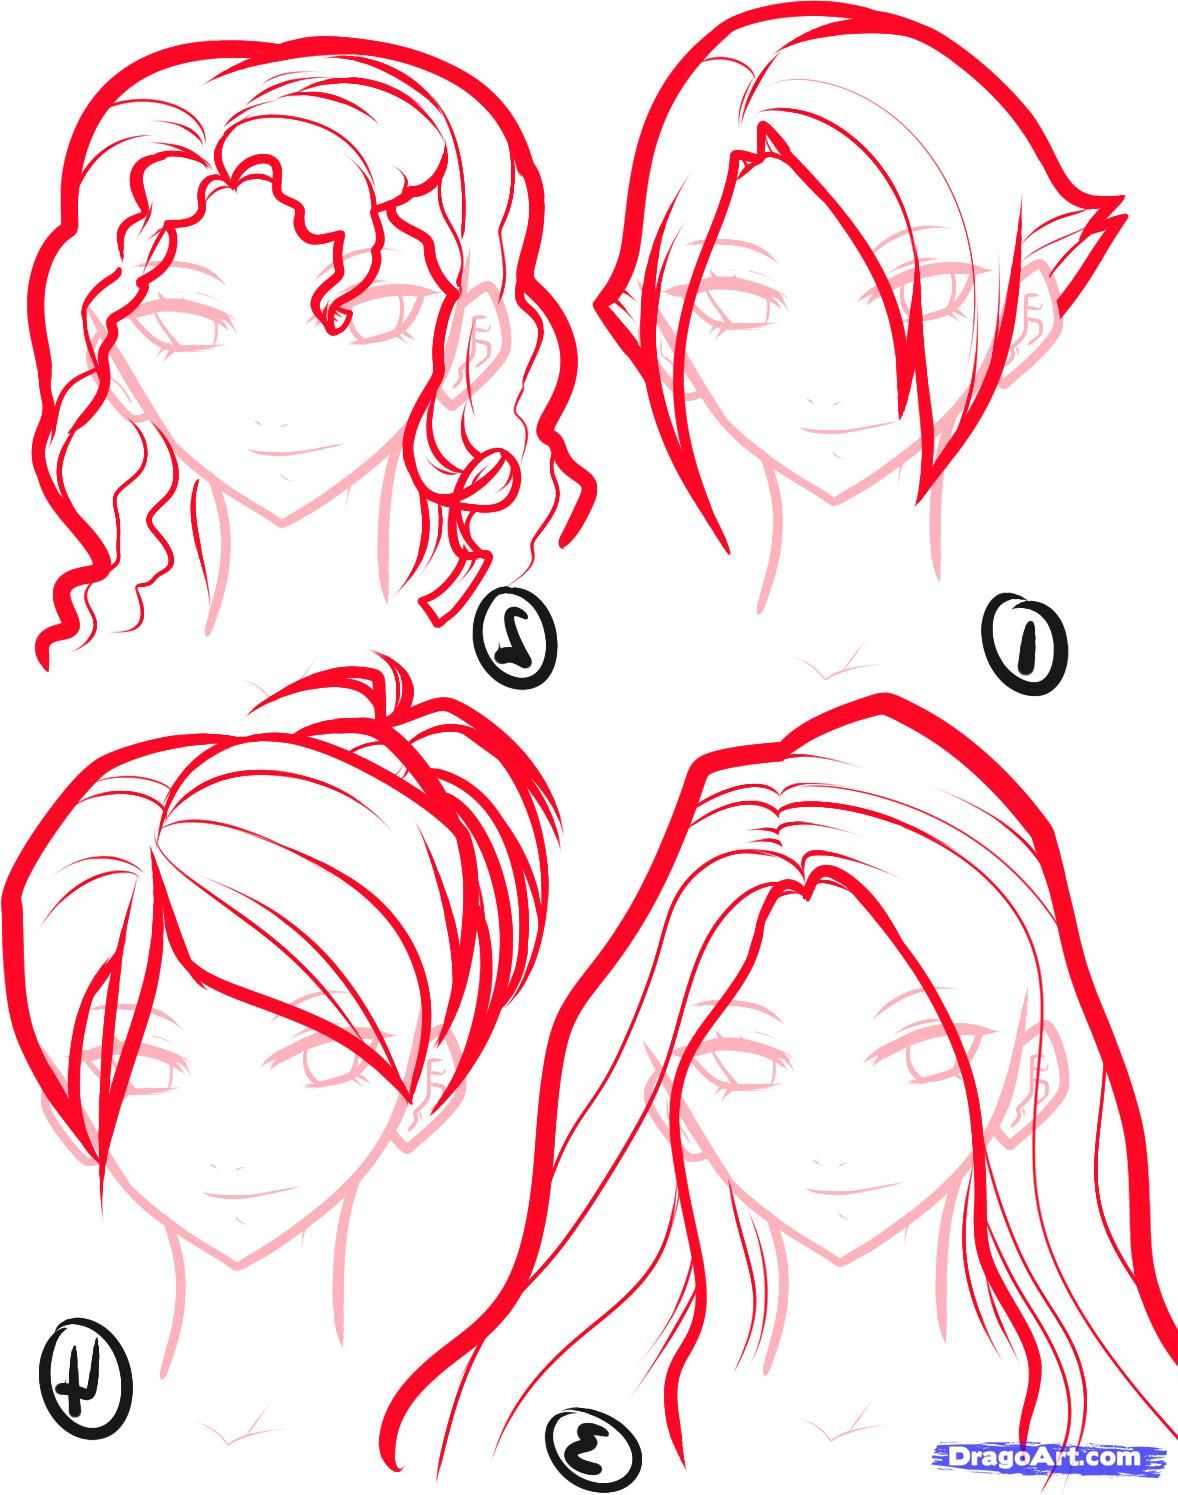 How To Draw Anime Draw Anime Hair Step By Step Anime Hair Anime Draw Japanese Anime Anime Drawings Cartoon Drawings Drawings